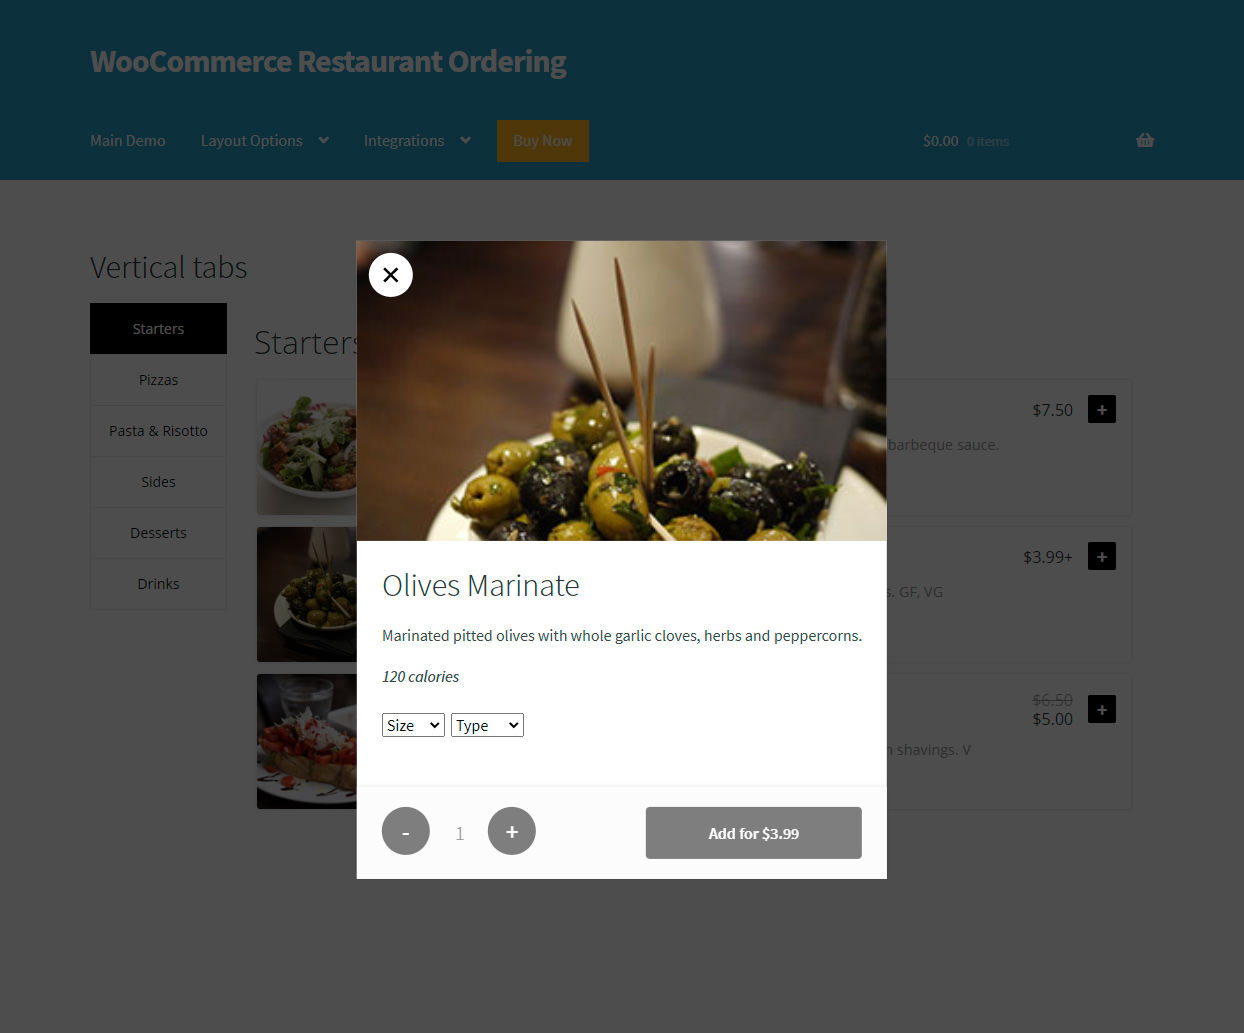 WooCommerce Restaurant Ordering Plugin - variations